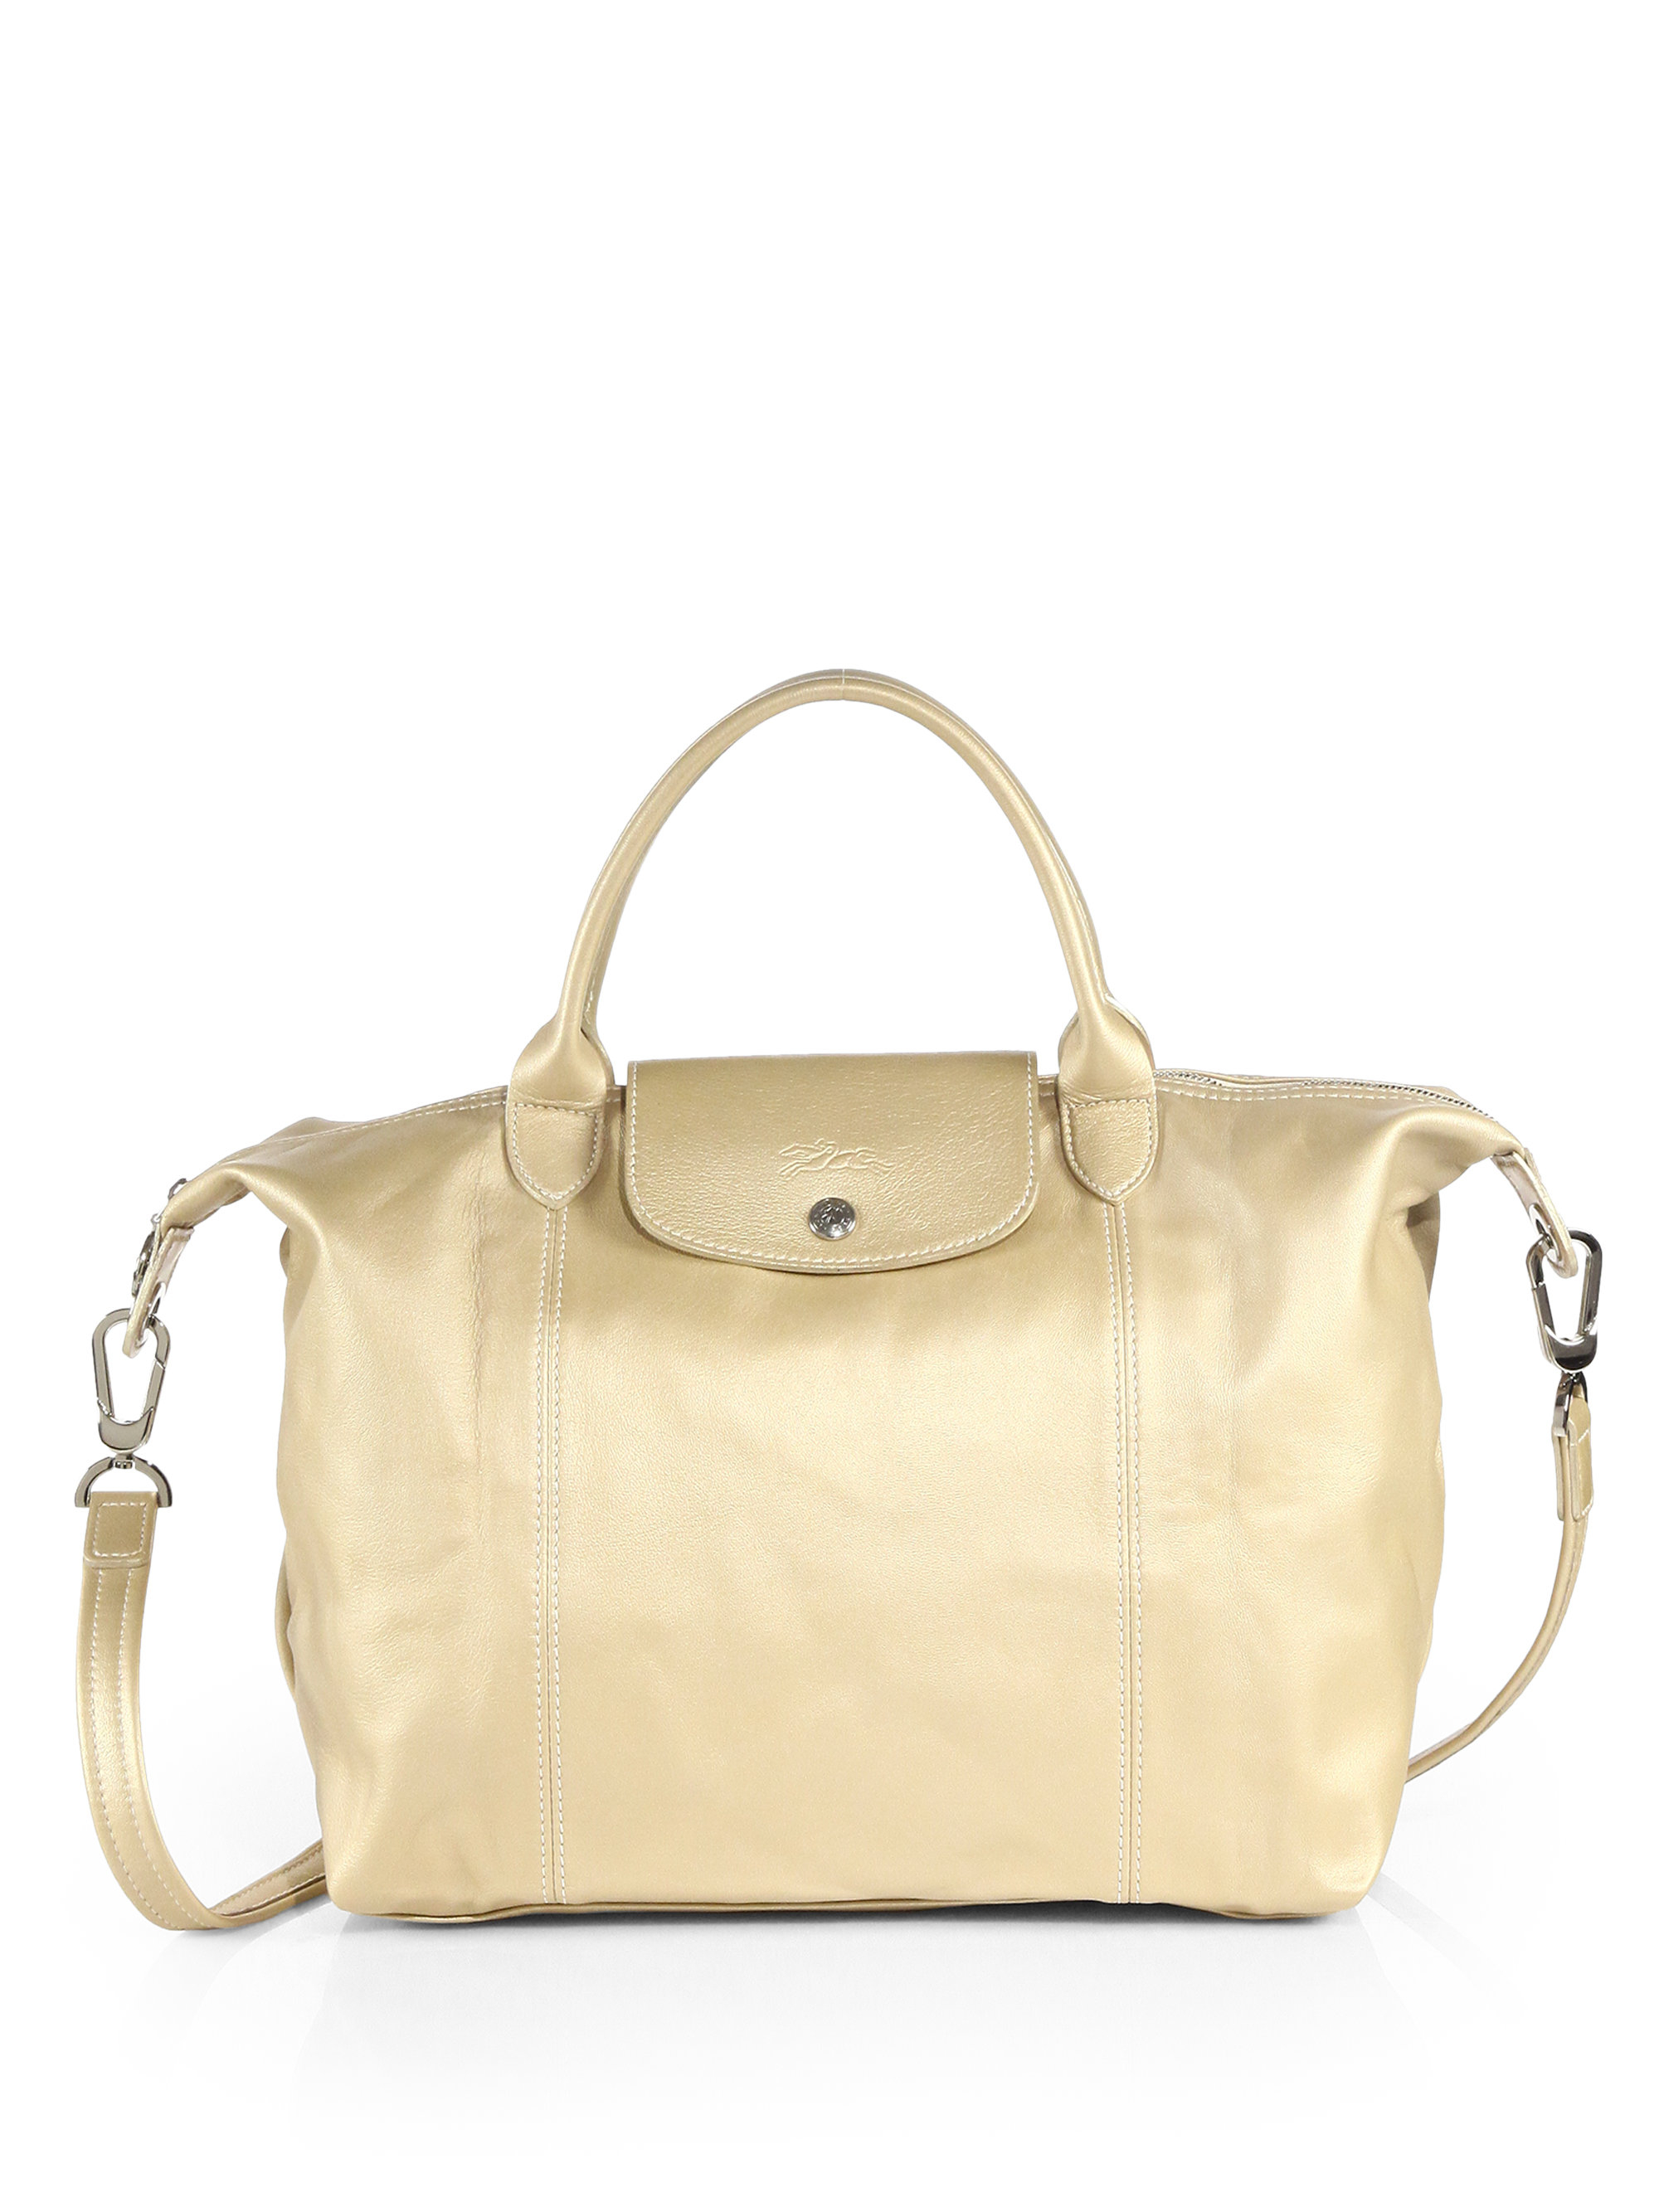 Longchamp Bag Le Pliage Colours : Longchamp le pliage cuir metallic leather top handle bag